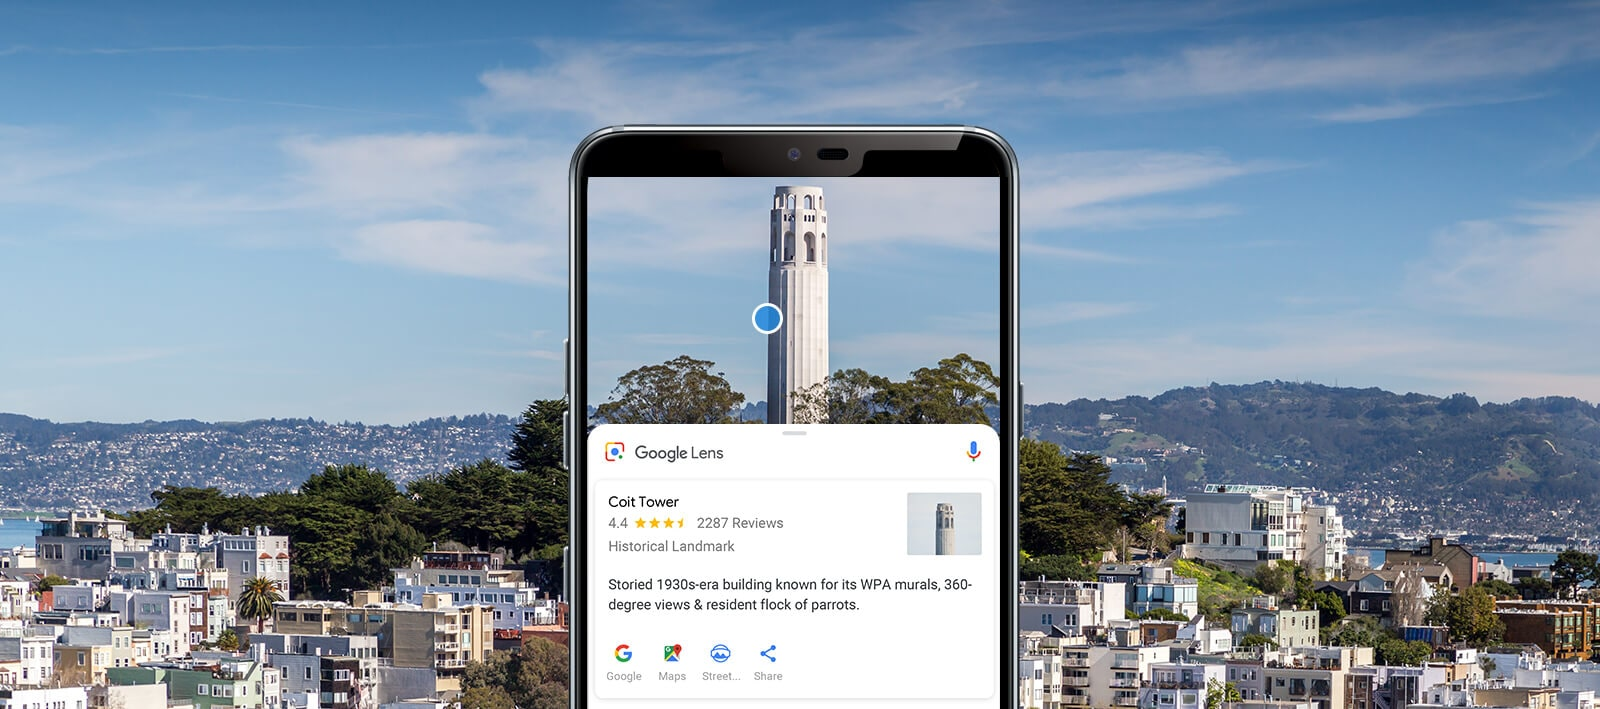 LG G7 ThinQ using Google Lens to identify the Coit Tower